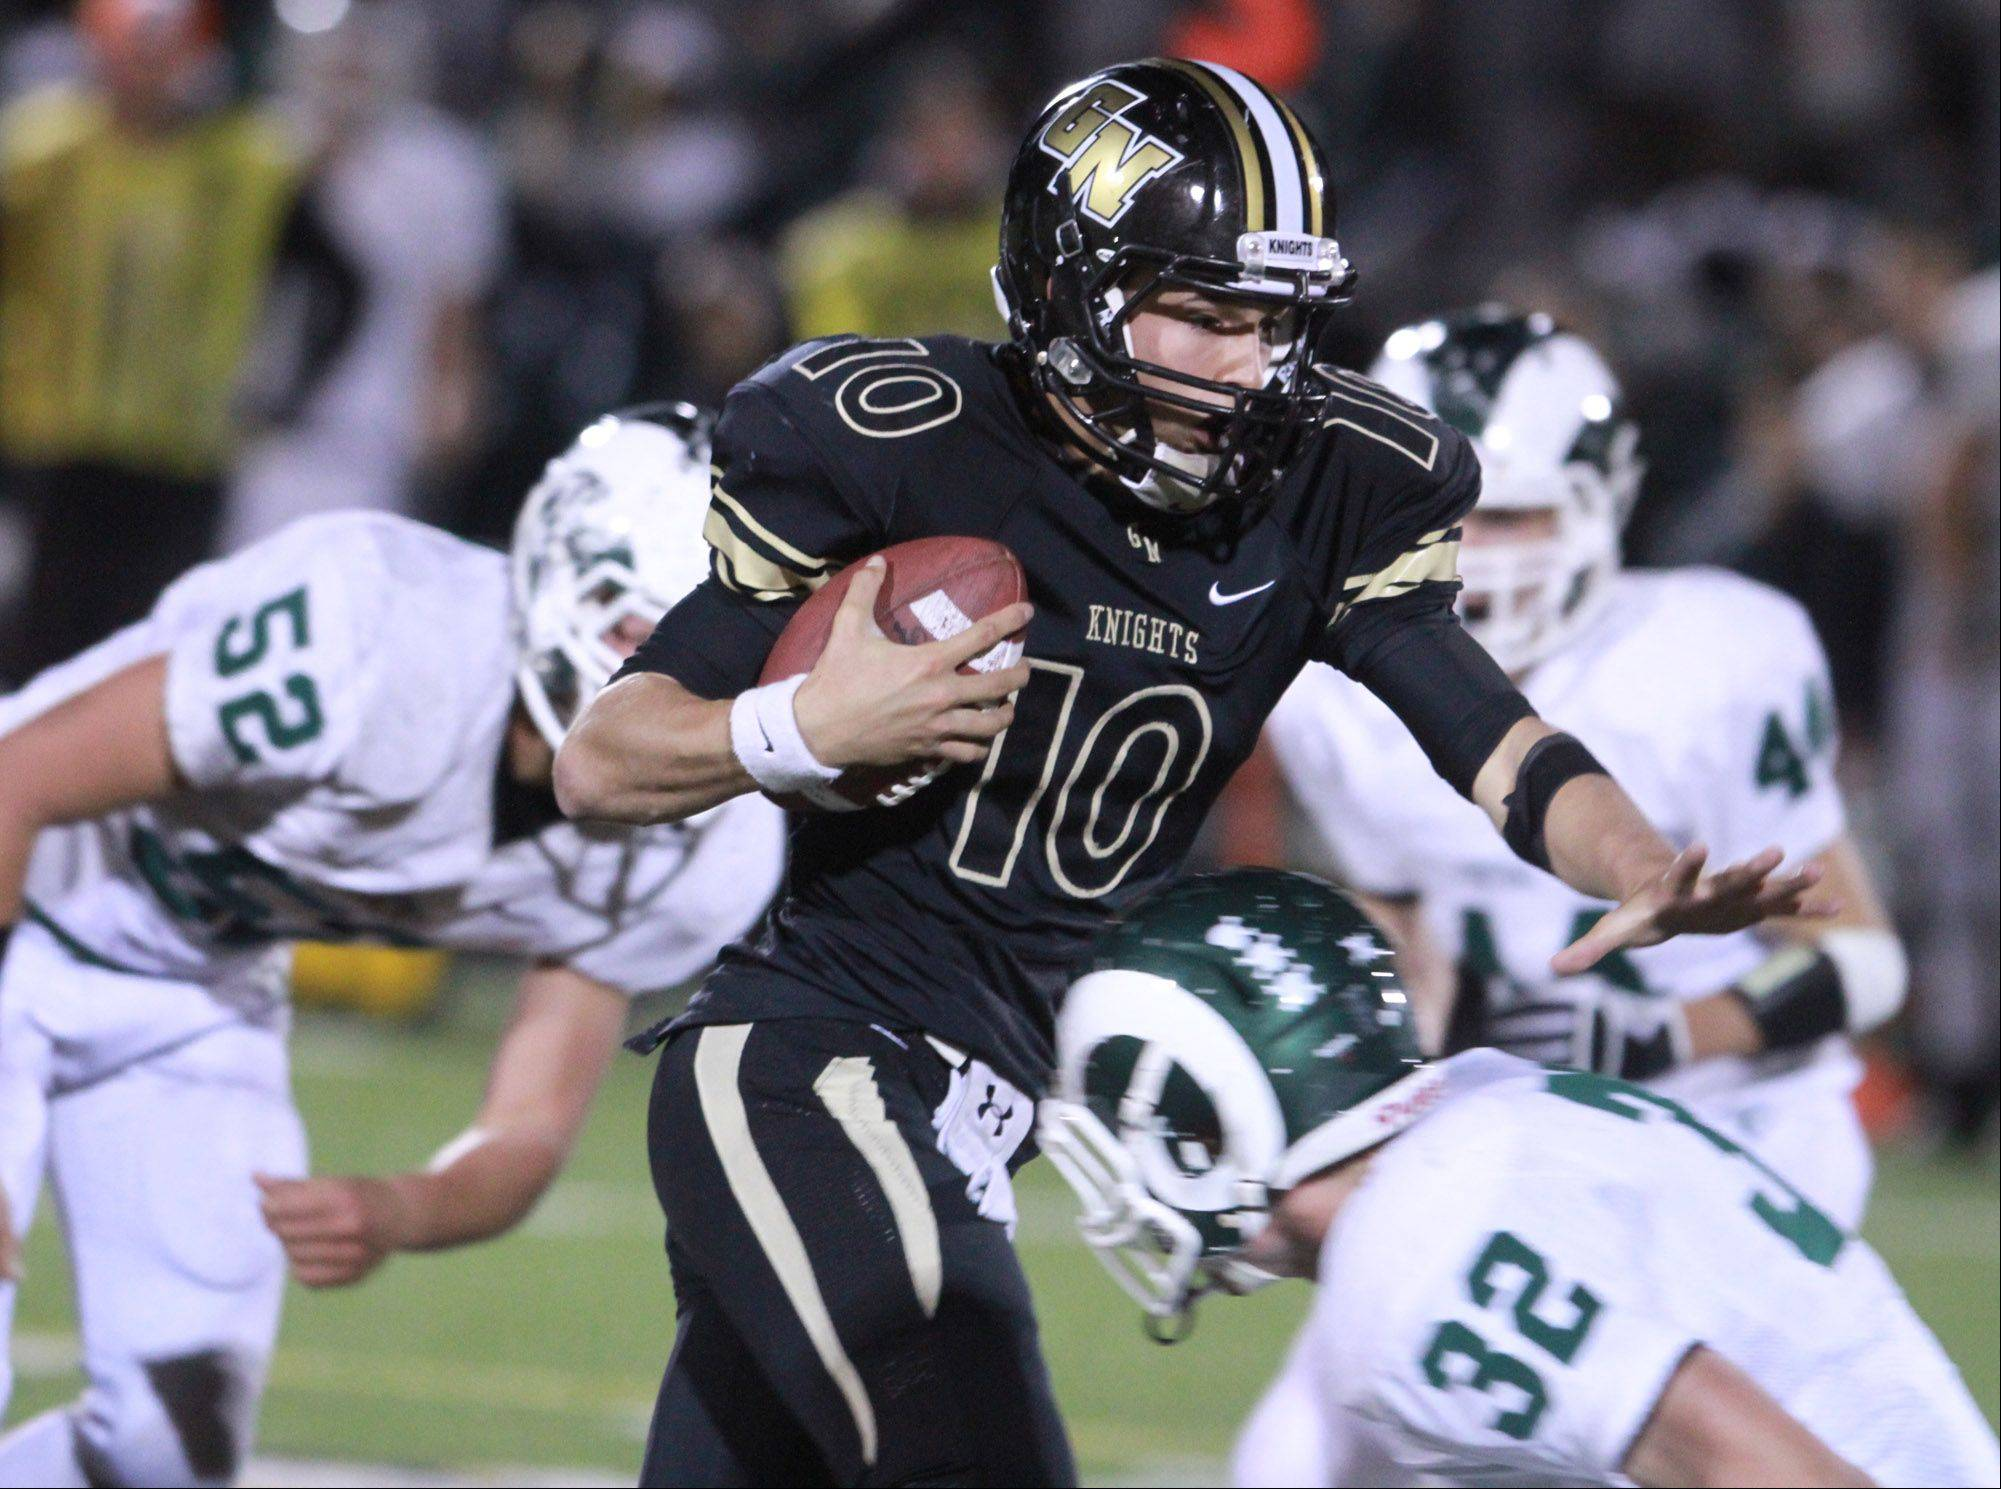 Grayslake North quarterback Anthony Fish slips past several Grayslake Central defenders.